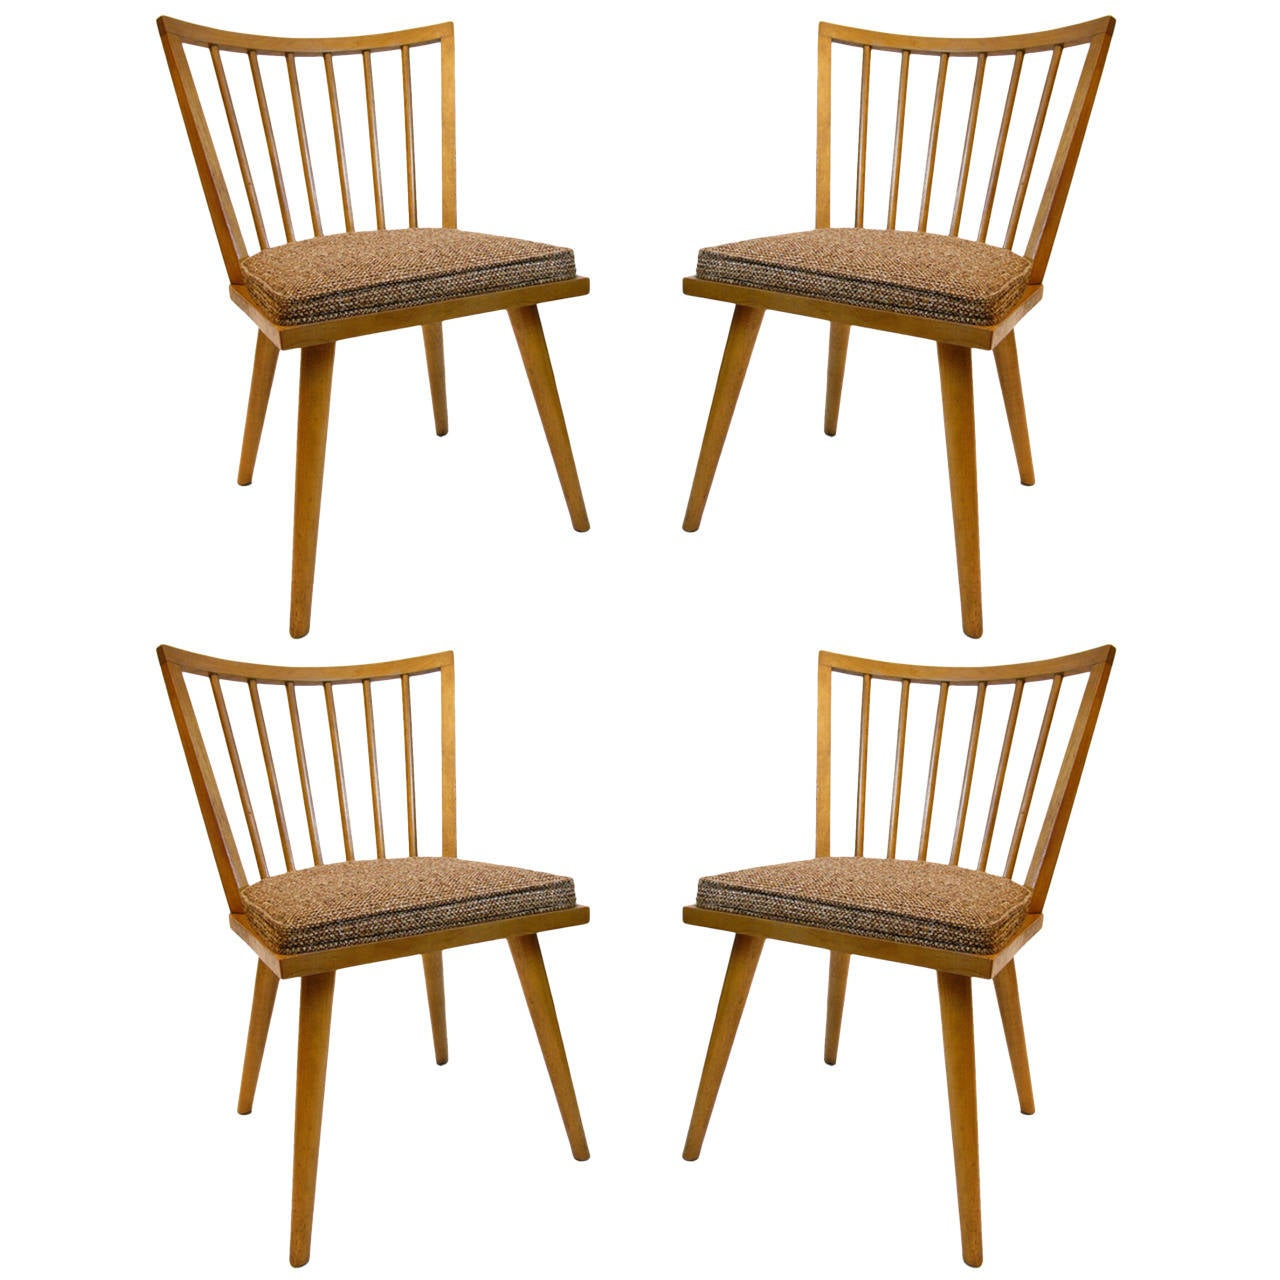 conant ball chair the big dc set of four russel wright for dining chairs